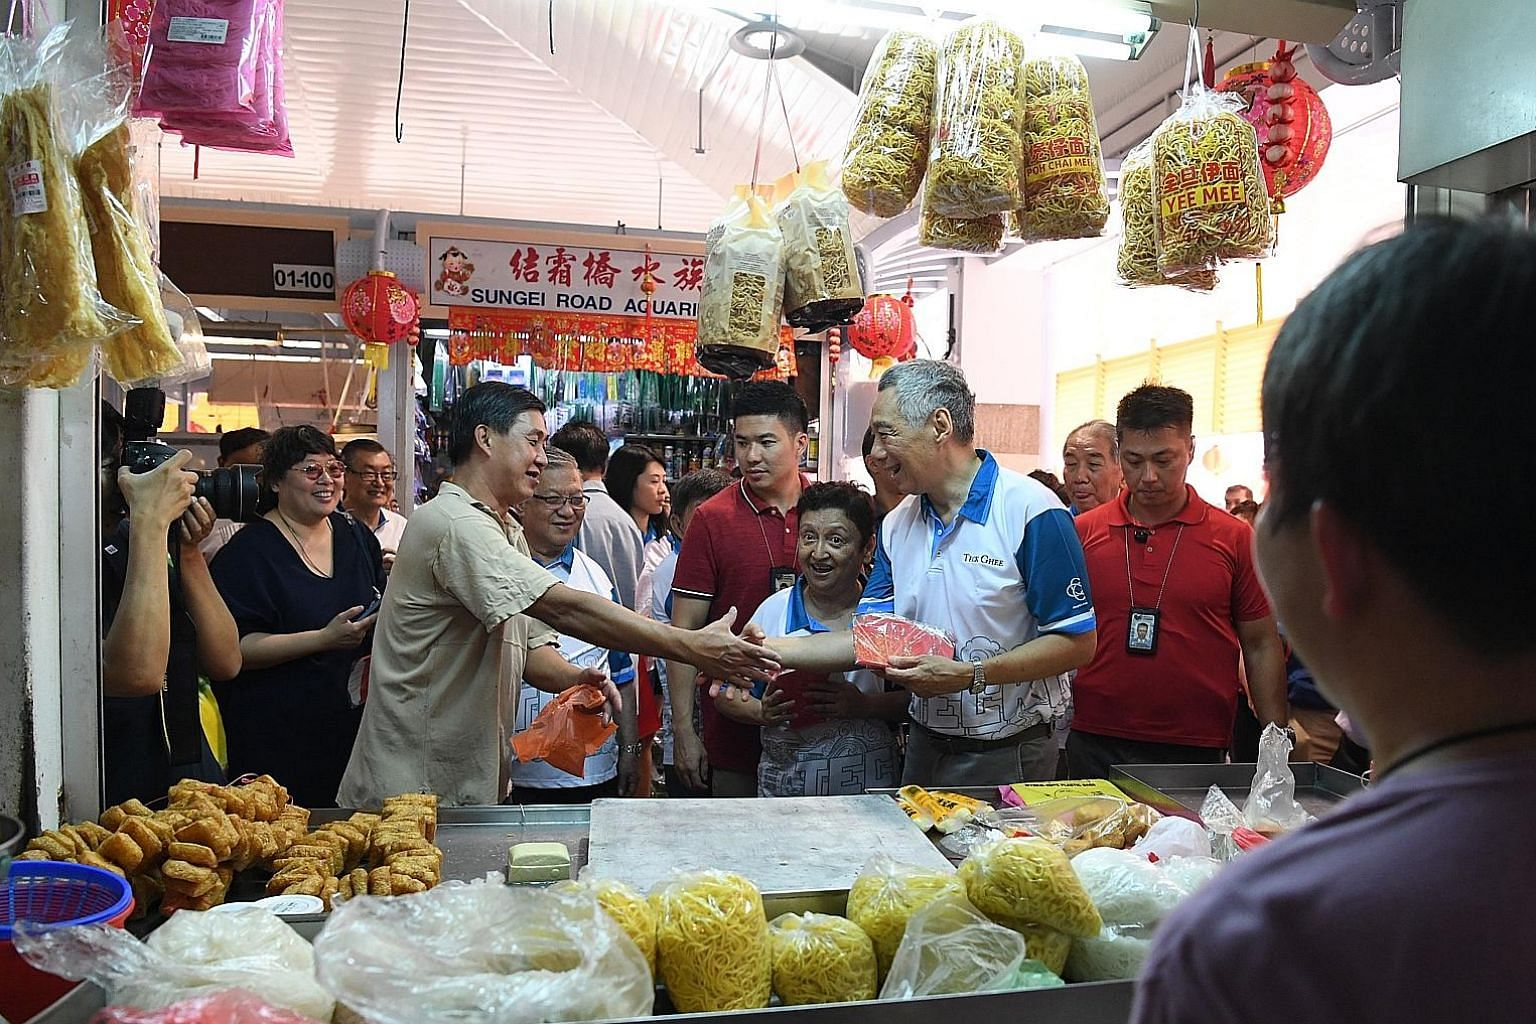 Prime Minister Lee Hsien Loong greeting a stall owner during a visit yesterday to Teck Ghee market in Ang Mo Kio, where he met residents and stall owners to exchange New Year greetings and give out red packets.